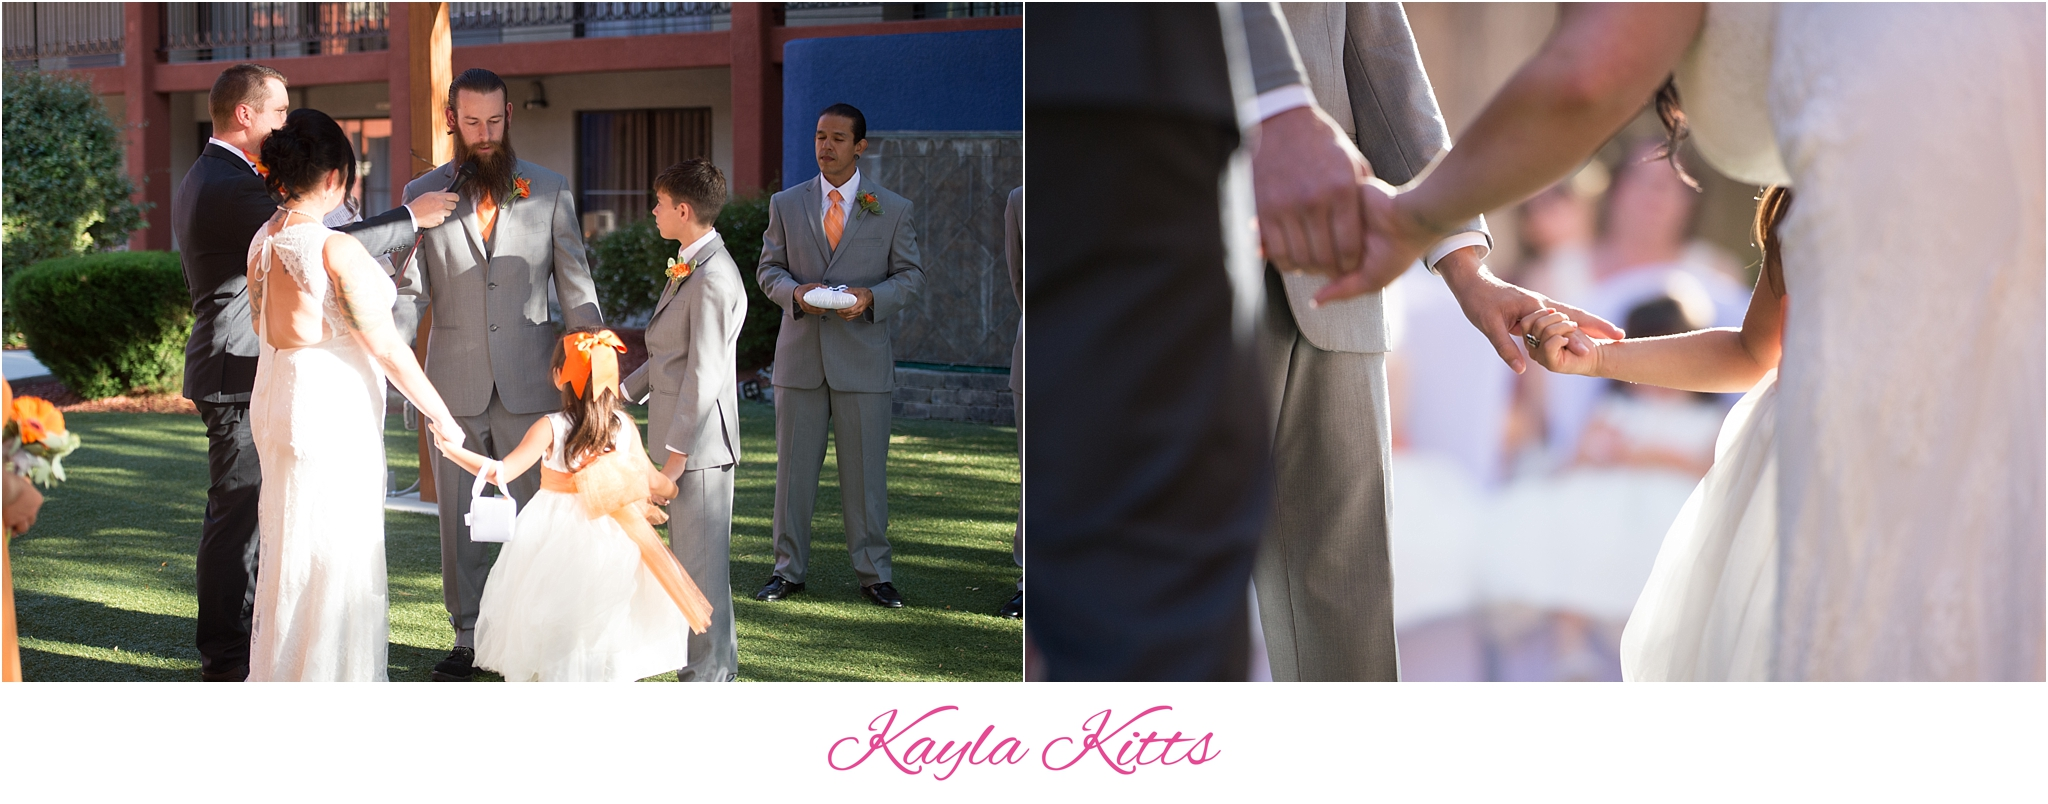 kayla kitts photography - albuquerque wedding photographer - albuquerque wedding photography - albuquerque venue - casa de suenos - hotel albuquerque wedding - new mexico wedding photographer - los poblanos wedding_0017.JPEG